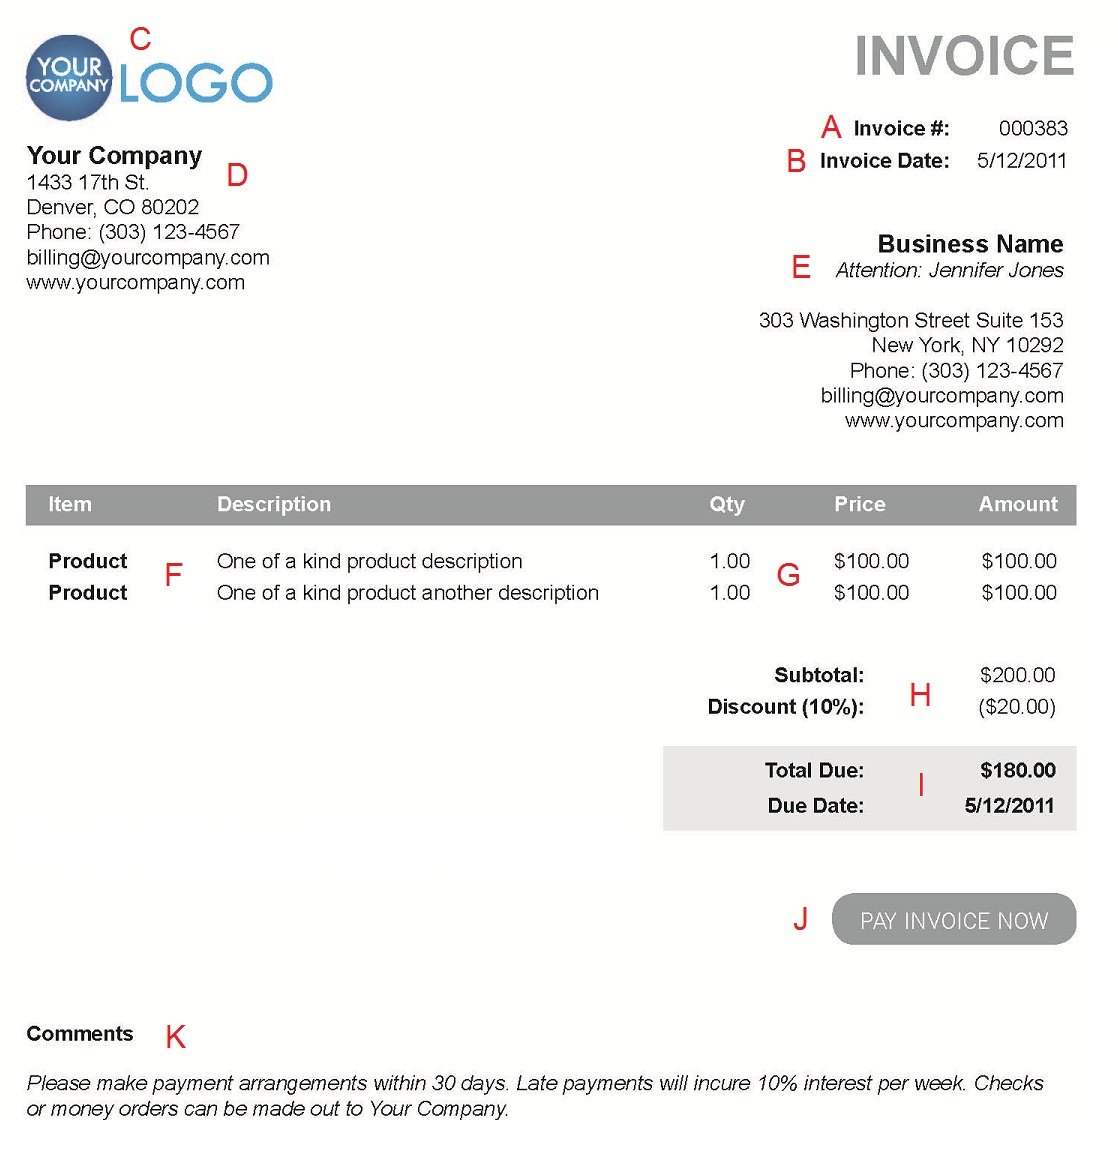 Coolmathgamesus  Inspiring The  Different Sections Of An Electronic Payment Invoice With Engaging A  With Captivating Bill Invoice Software Also Free Invoice Template Pdf Format In Addition Cash Invoice Template And Sliq Invoicing Plus As Well As Free Online Invoice System Additionally Invoice Template For Freelance Work From Paysimplecom With Coolmathgamesus  Engaging The  Different Sections Of An Electronic Payment Invoice With Captivating A  And Inspiring Bill Invoice Software Also Free Invoice Template Pdf Format In Addition Cash Invoice Template From Paysimplecom